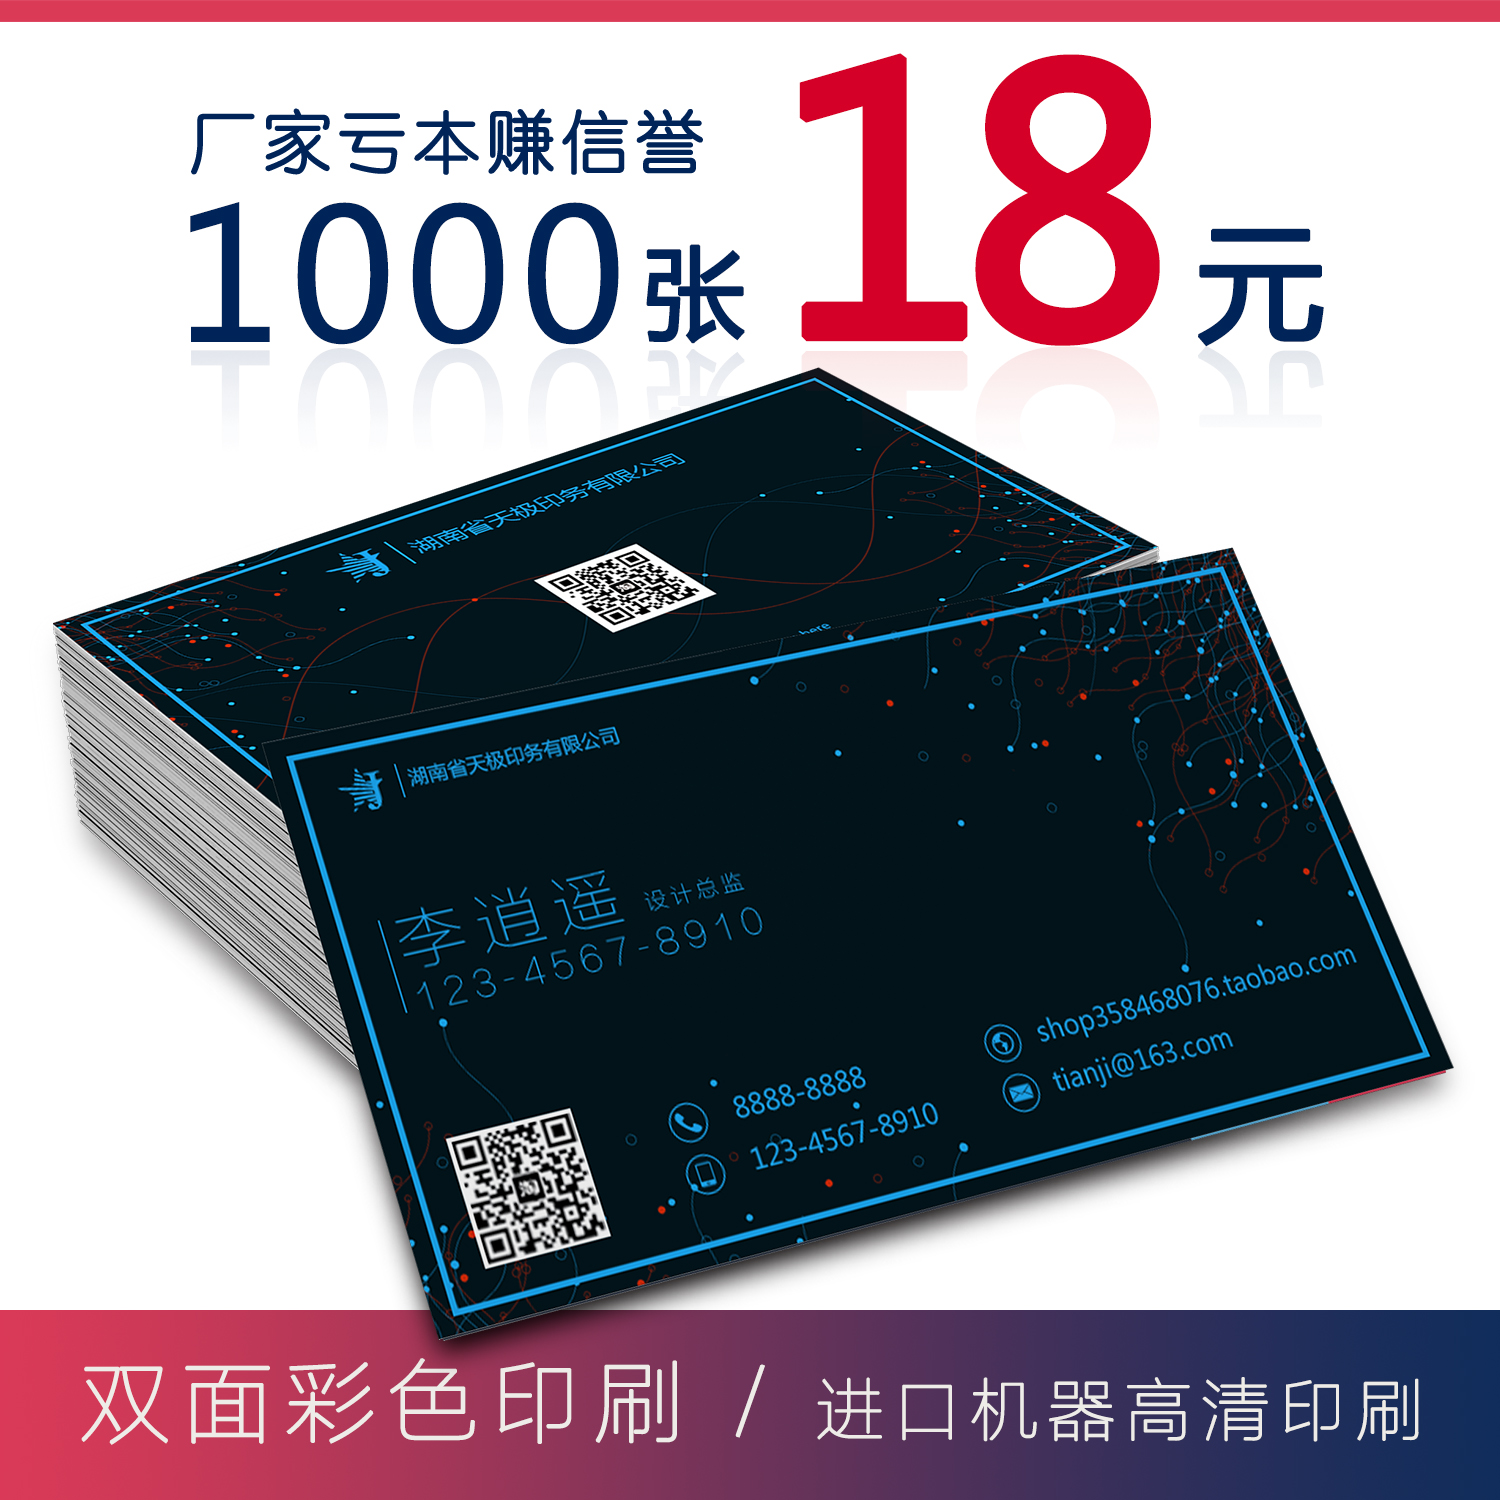 Usd 729 Business Card Making Free Design Two Dimensional Code High